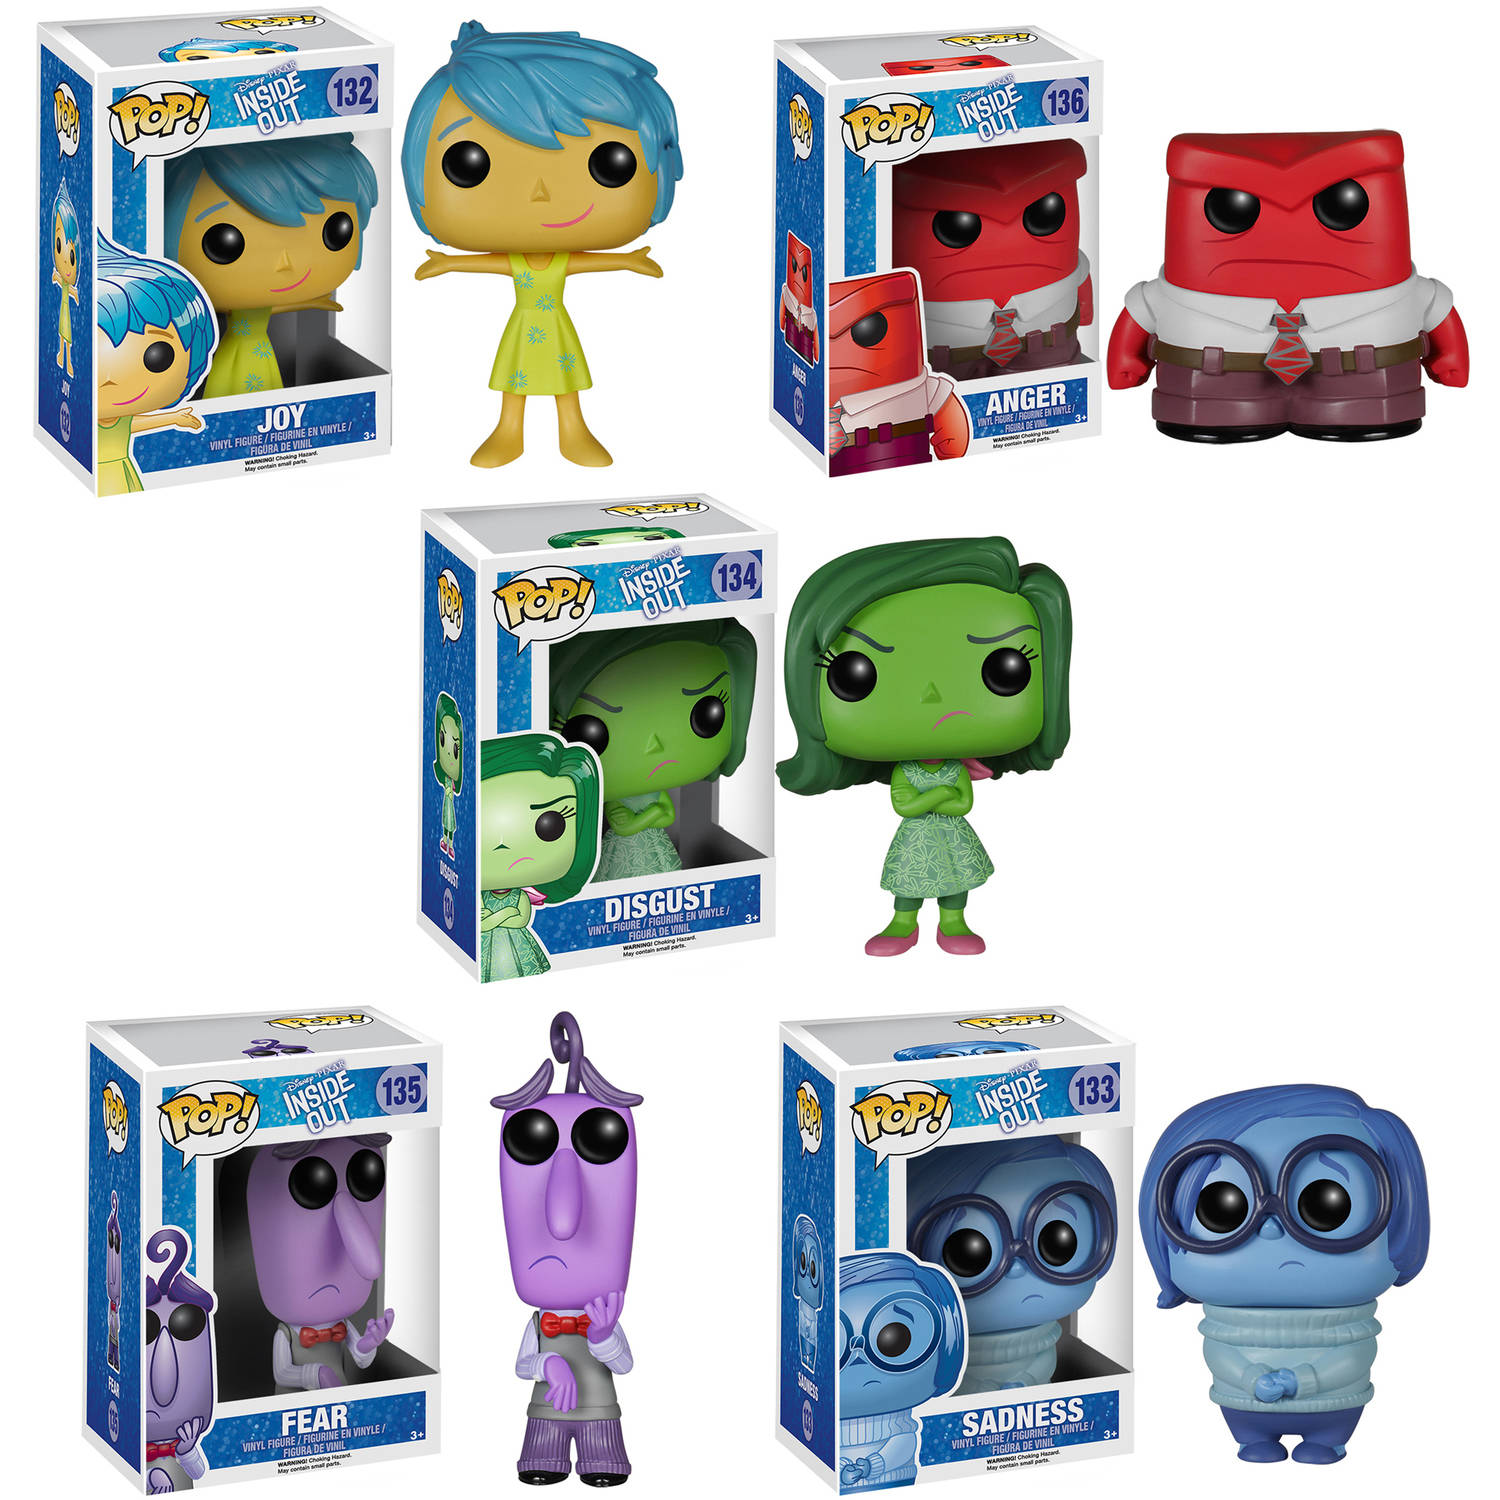 Funko Inside Out POP! Disney/Pixar Vinyl Collectors Set: Sadness, Joy, Disgust, Anger, Fear G847944000716